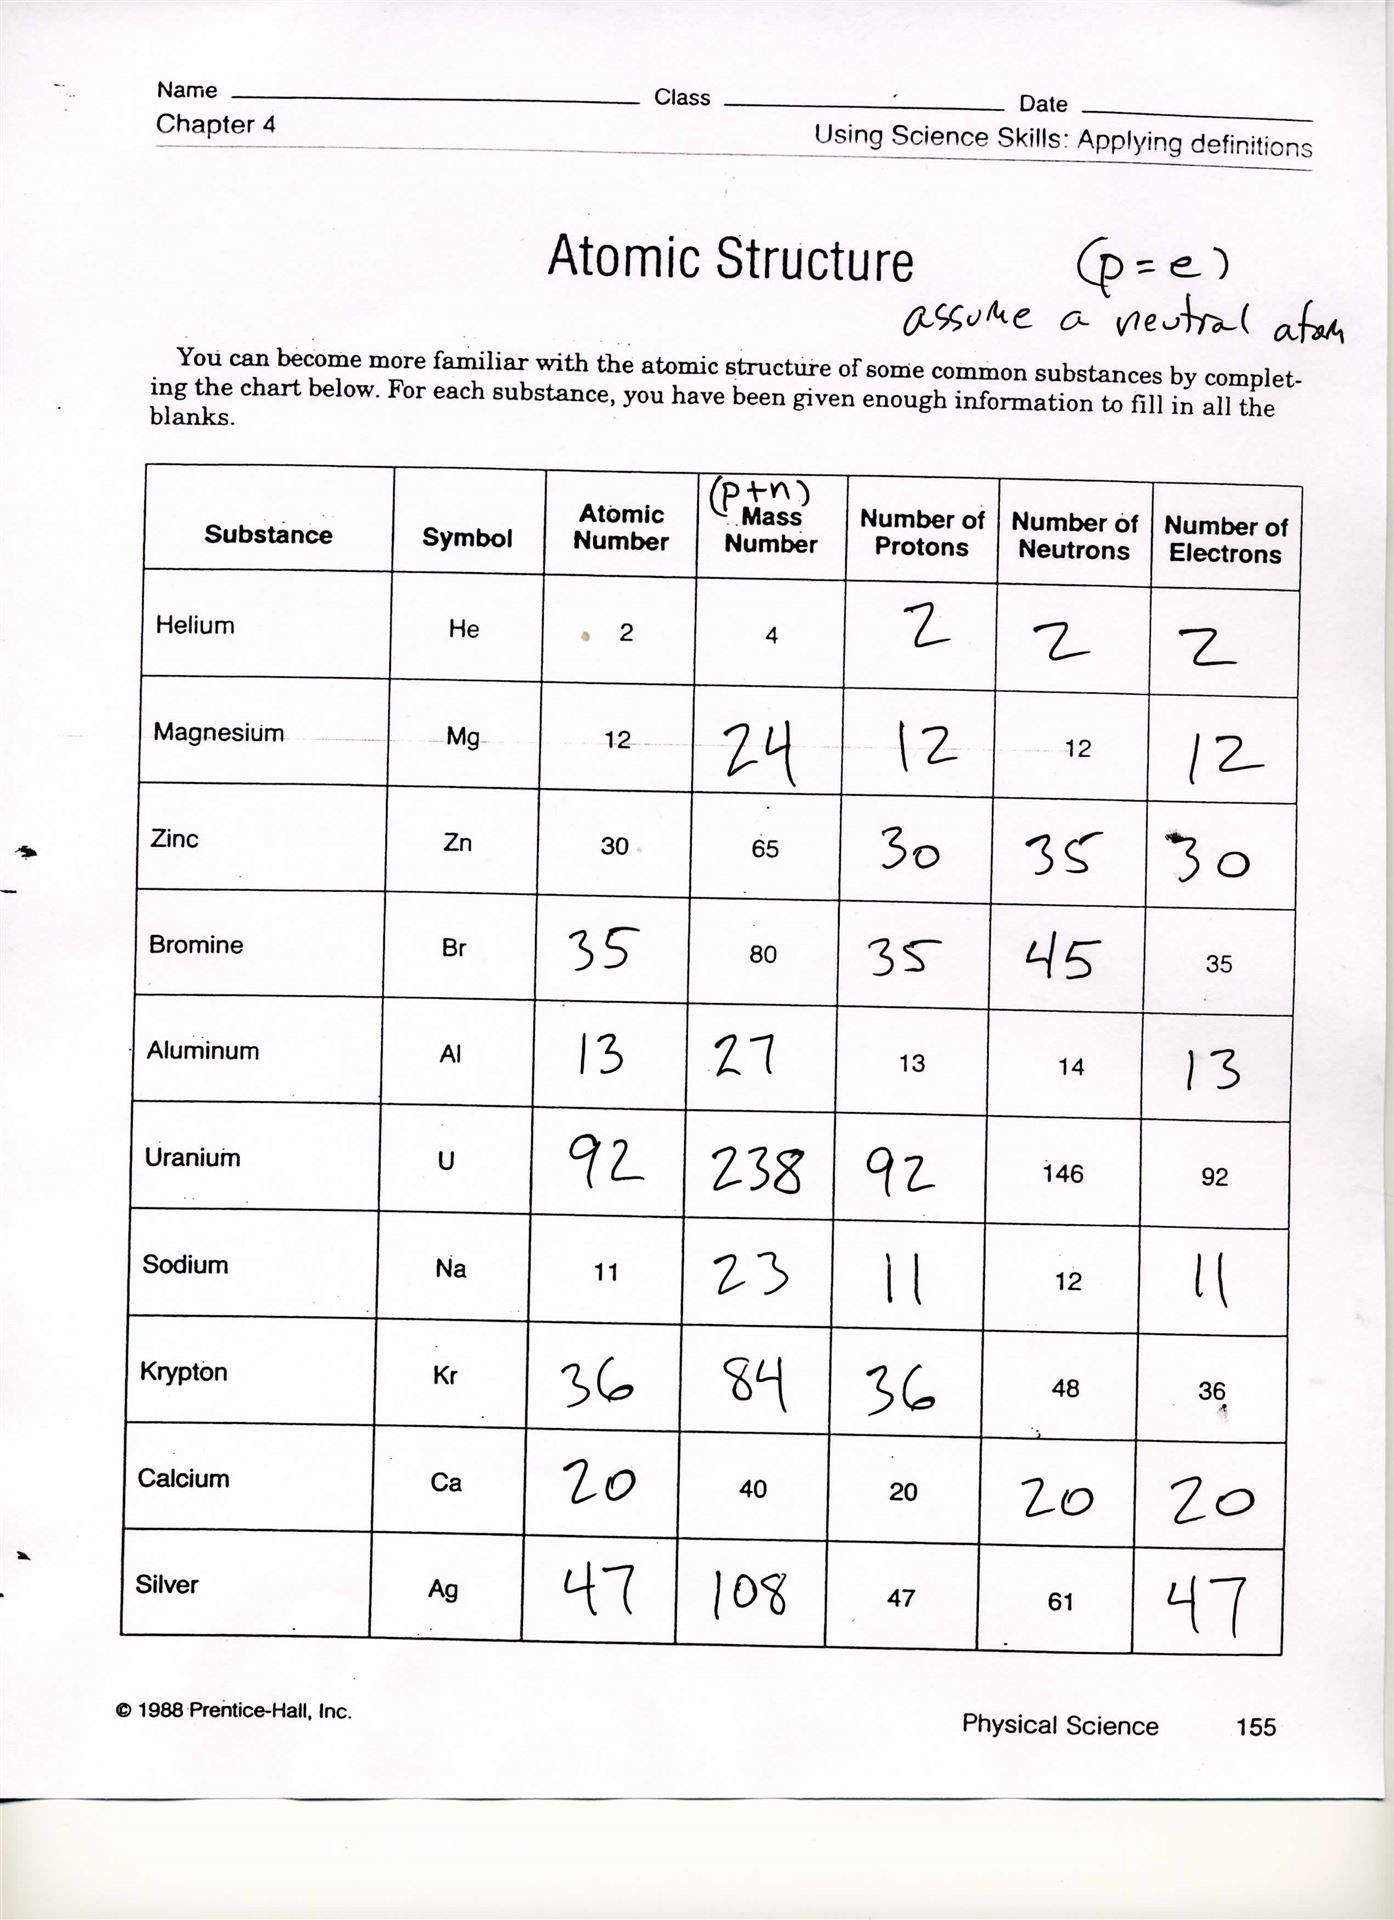 Atomic Structure Worksheet Answers Chemistry Free Chemistry Worksheets On atomic Structure Yahoo Search